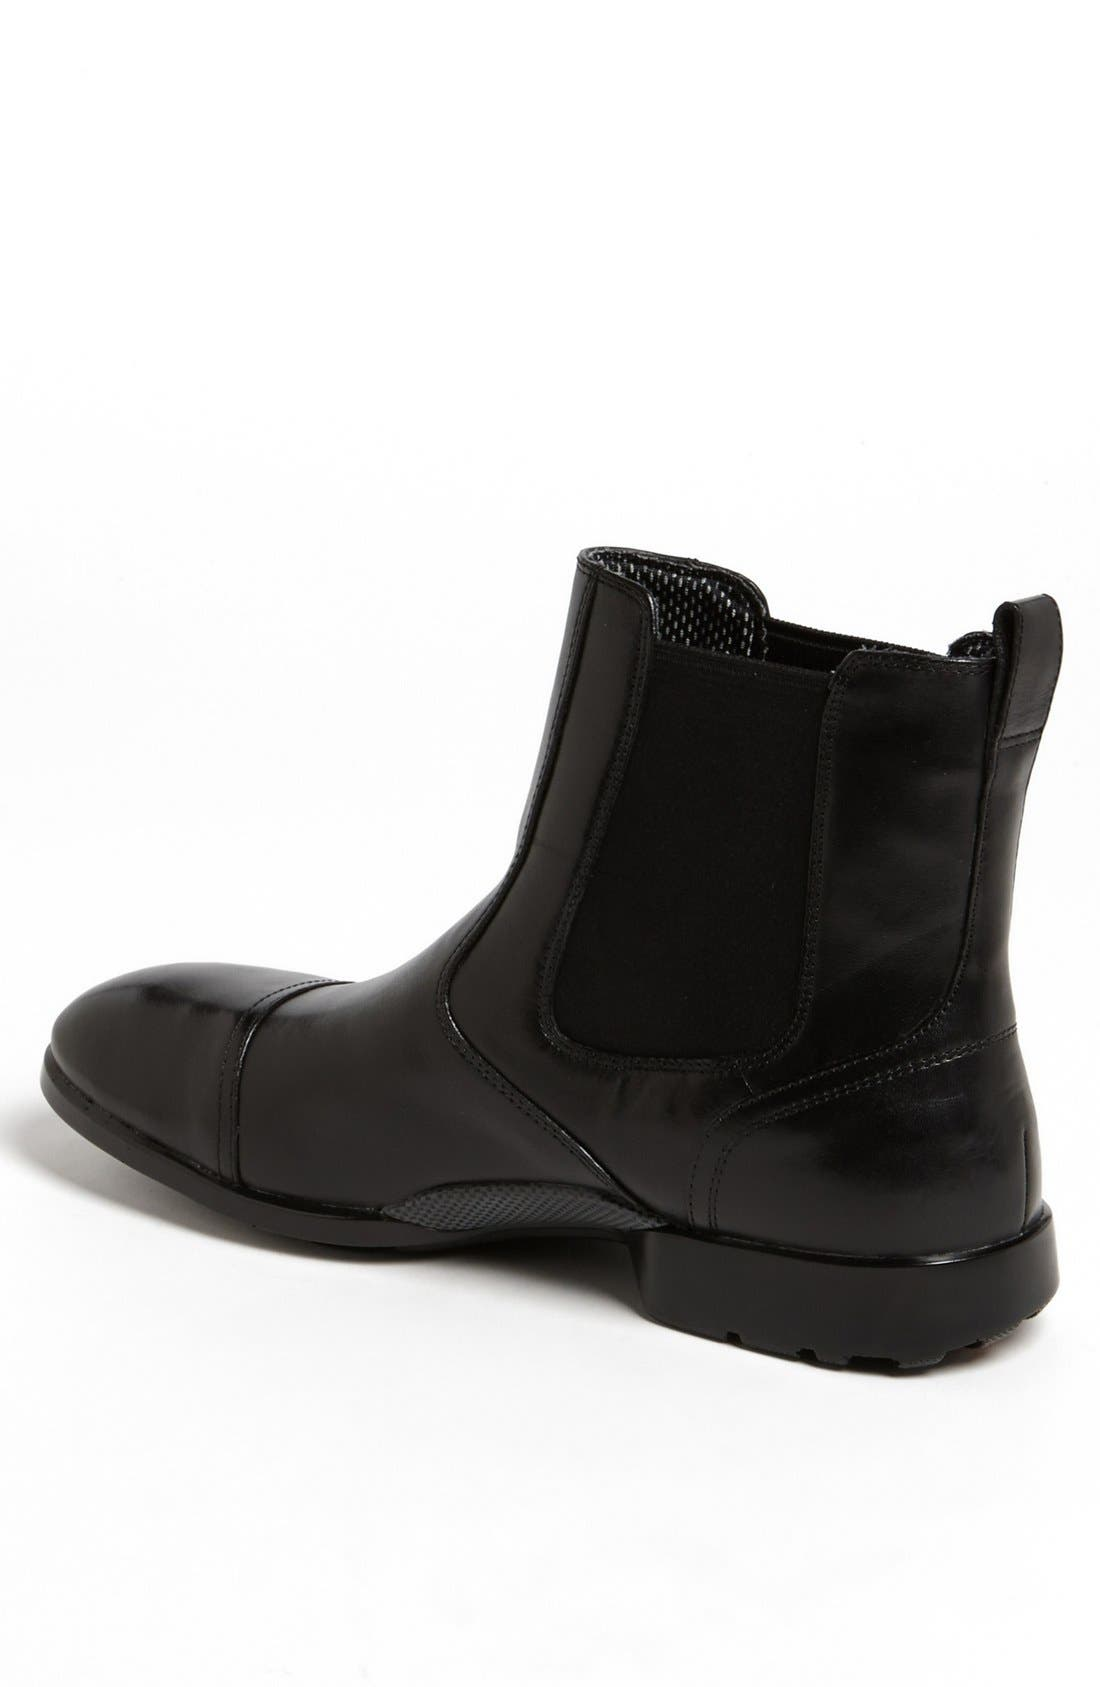 Alternate Image 2  - Rockport 'Total Motion' Chelsea Boot